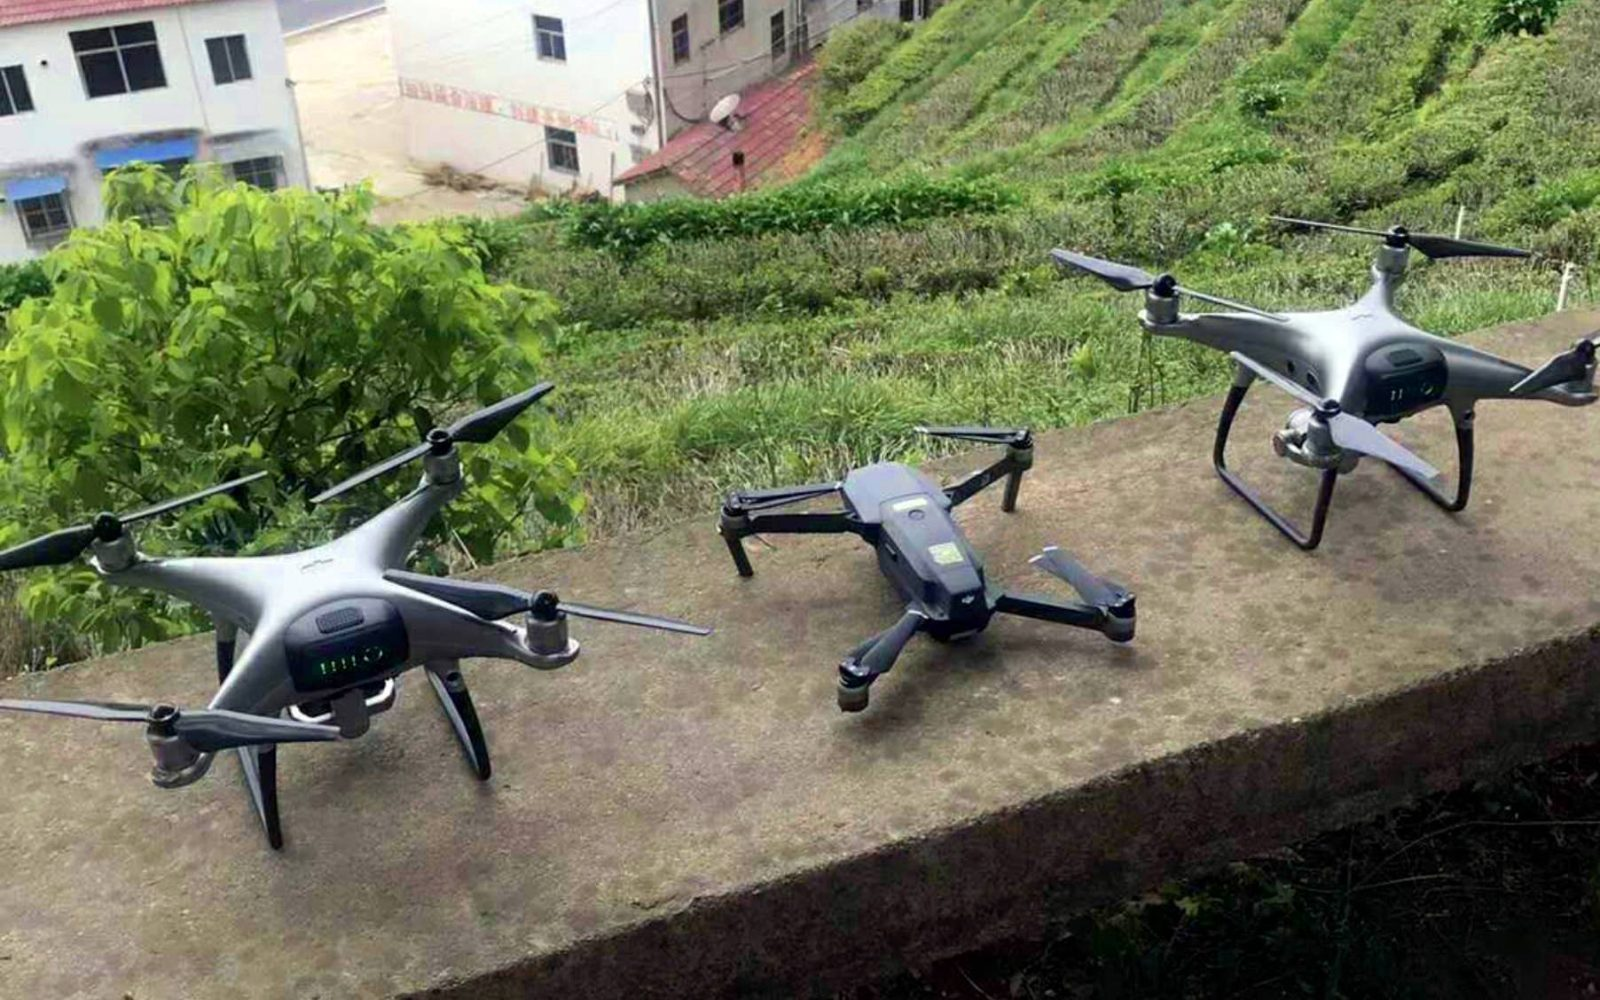 Additional Photos Of The New Phantom 5 Or 4 Pro V20 Show 2 Drones Prototypes Real Deal